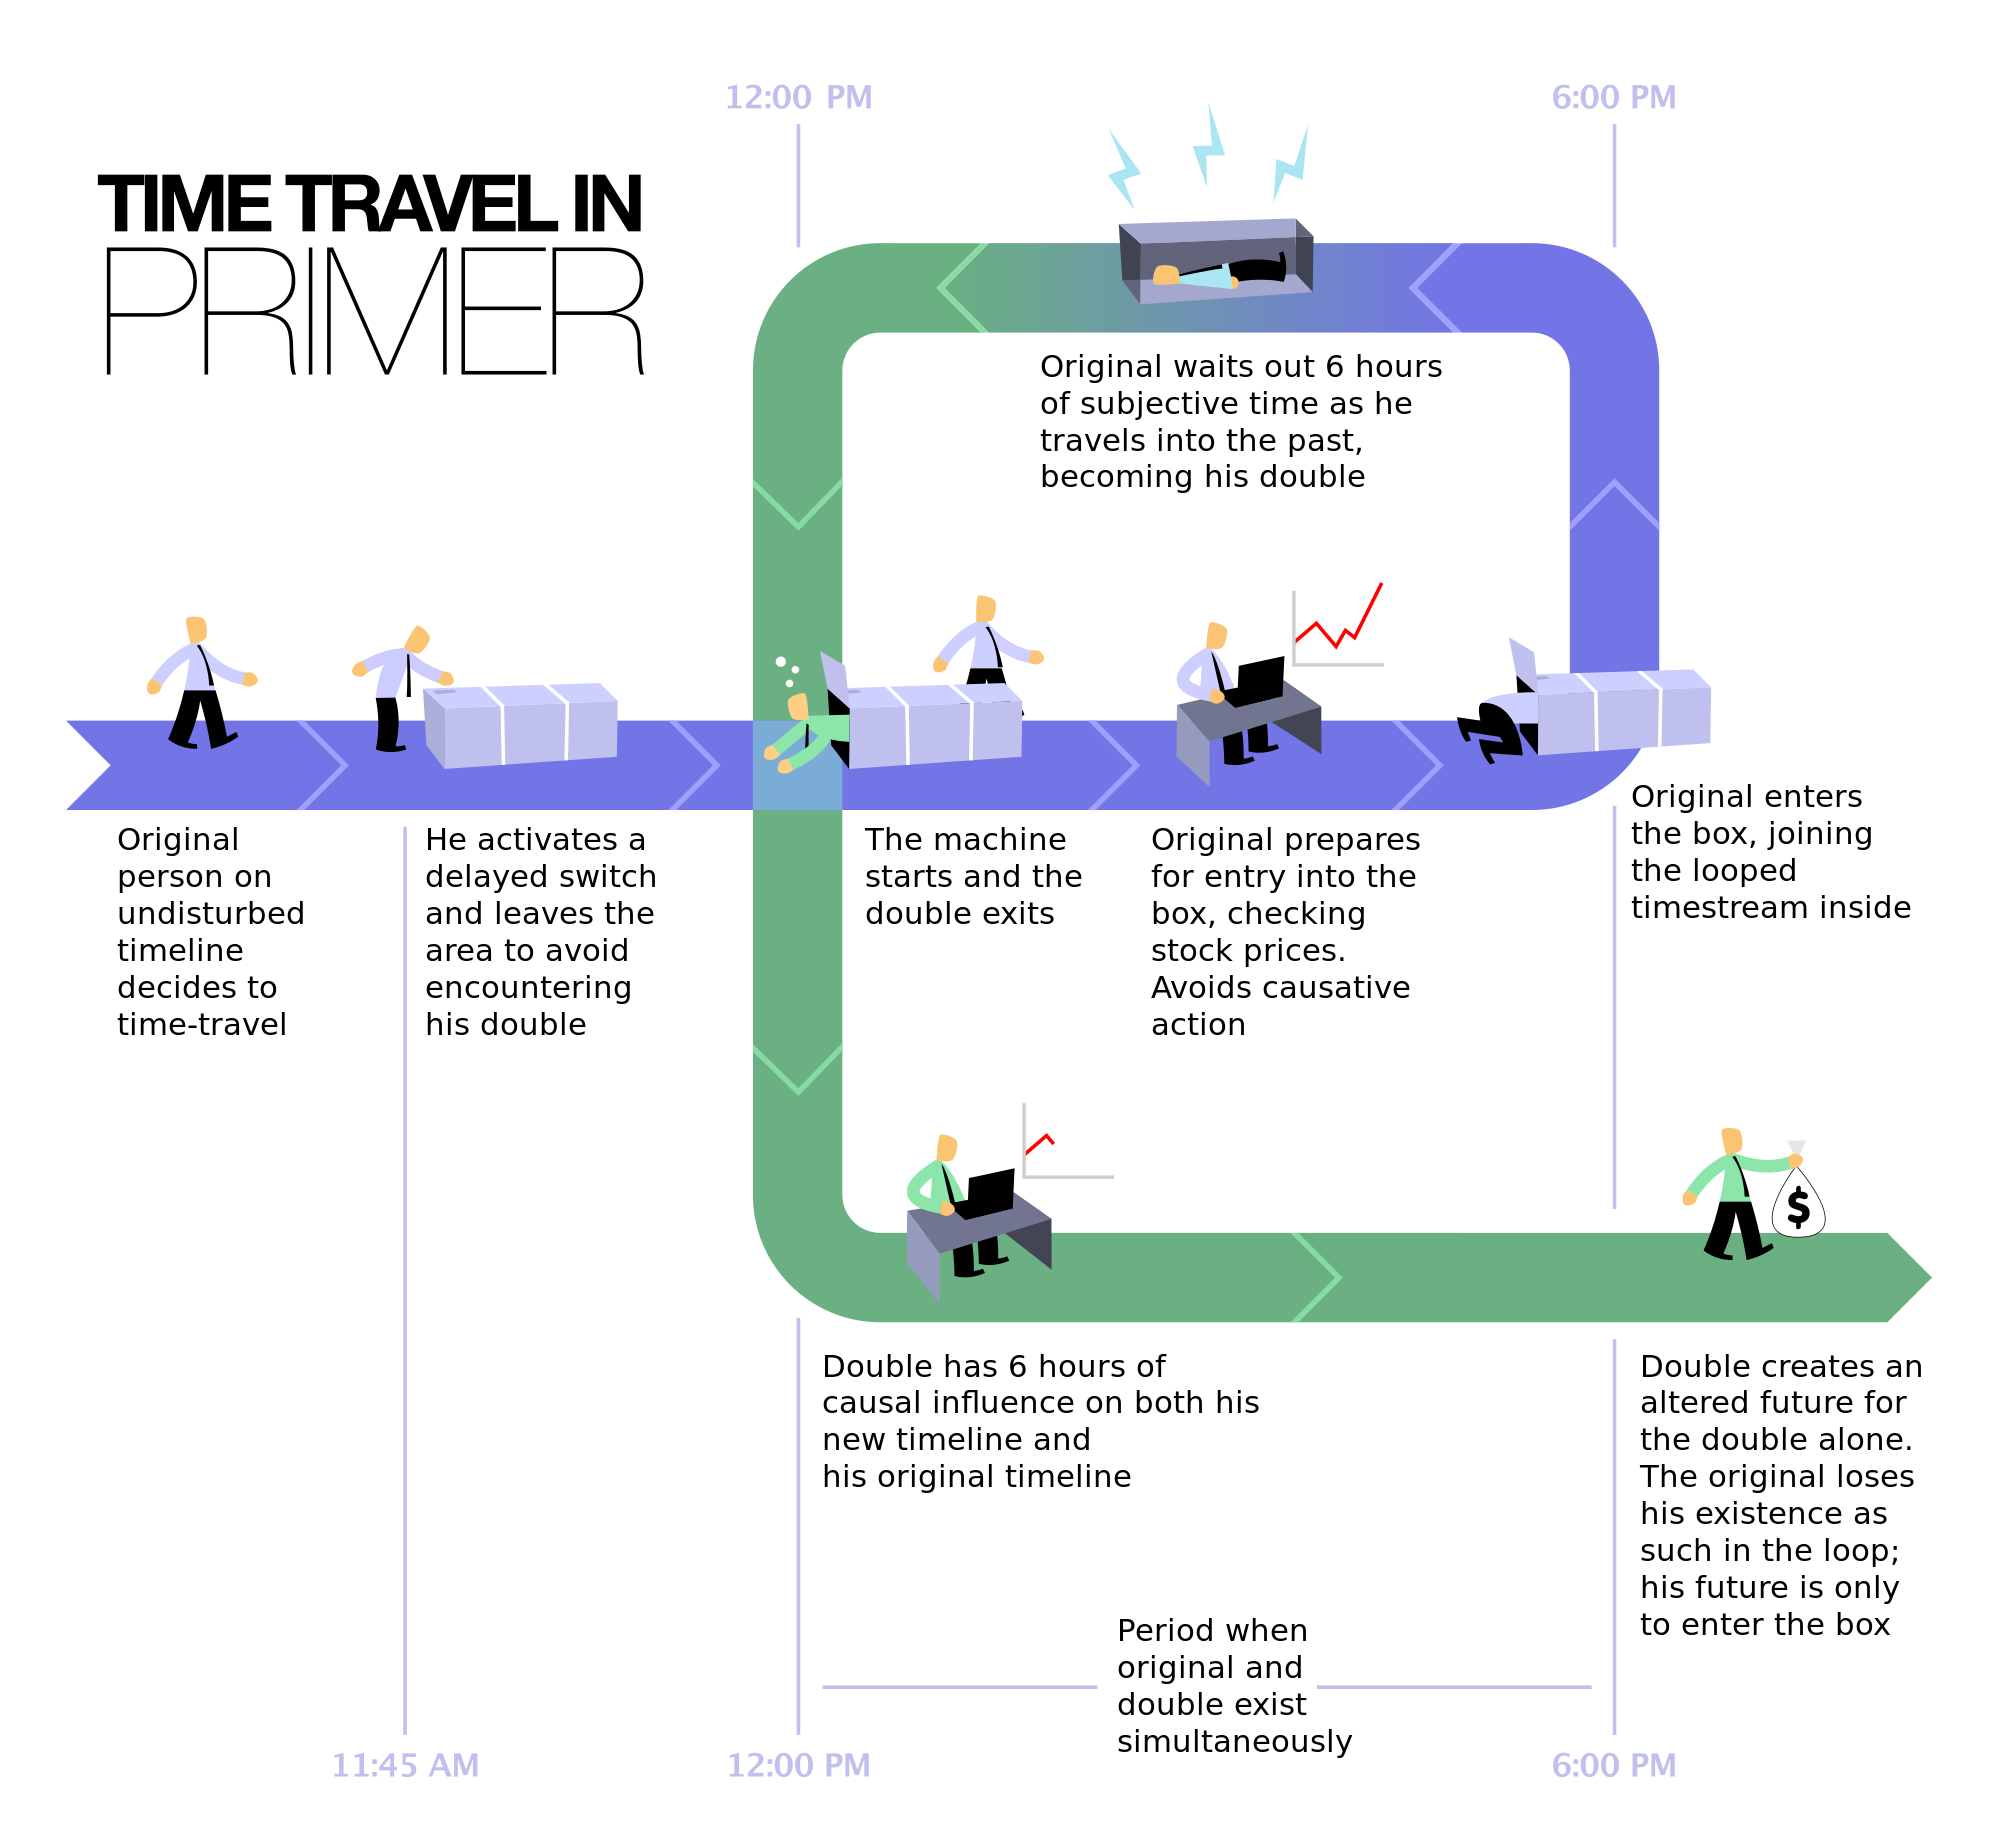 time travel in primer a diagram misc movie time travel in primer a diagram